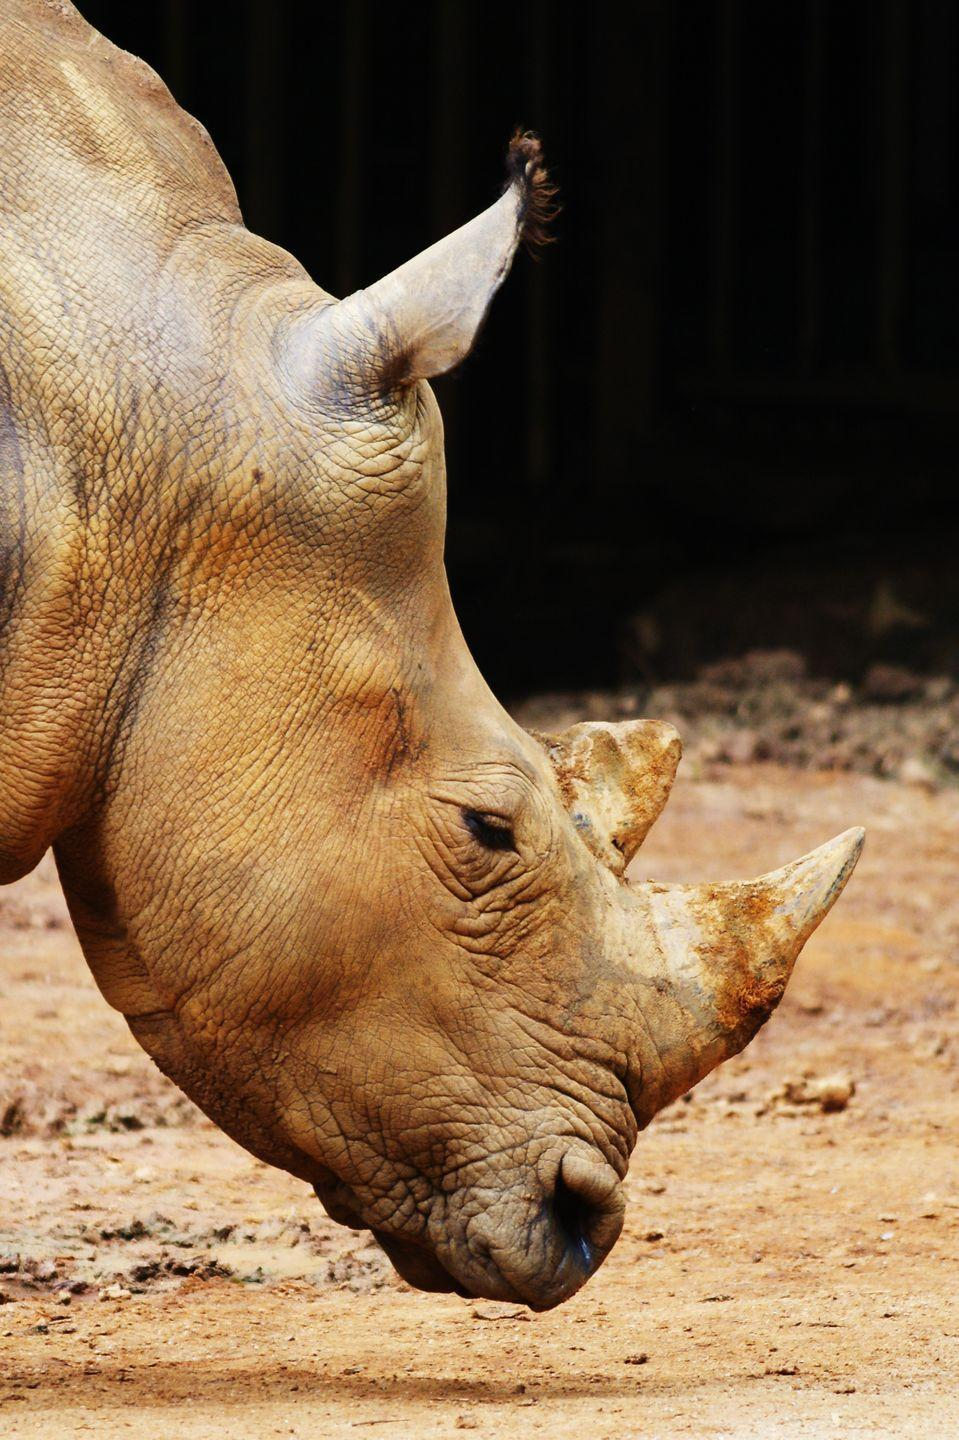 "<p><strong>Scientific classification: </strong><em>Dicerorhinus sumatrensis</em></p><p><strong>Location:</strong> Indonesia, Malaysia</p><p>There are five species of rhino left on Earth—and as mentioned, only one of them is faring well comparatively to the others. While not nearly as endangered as the Javan Rhino, the Sumatran Rhino exists in a few pockets across Indonesia, and there are maybe 100 left in the wild across one peninsula and two different islands. Because they are isolated into pockets, it may be <a href=""https://www.worldwildlife.org/species/sumatran-rhino"" rel=""nofollow noopener"" target=""_blank"" data-ylk=""slk:hard to find other rhinos to mate with"" class=""link rapid-noclick-resp"">hard to find other rhinos to mate with</a>.<br></p><p>There are two extant subspecies—the eastern and western. The eastern is the smallest known rhino and the most endangered, with only 15 surviving in the wild in Borneo. The subspecies was even once declared extinct in the wild until a juvenile female was found in 2016, giving some hope that populations, however small, continue to exist. There are plans to build a preserve for them at the Kelian Protected Forest, but with so few left, every rhino counts.</p>"